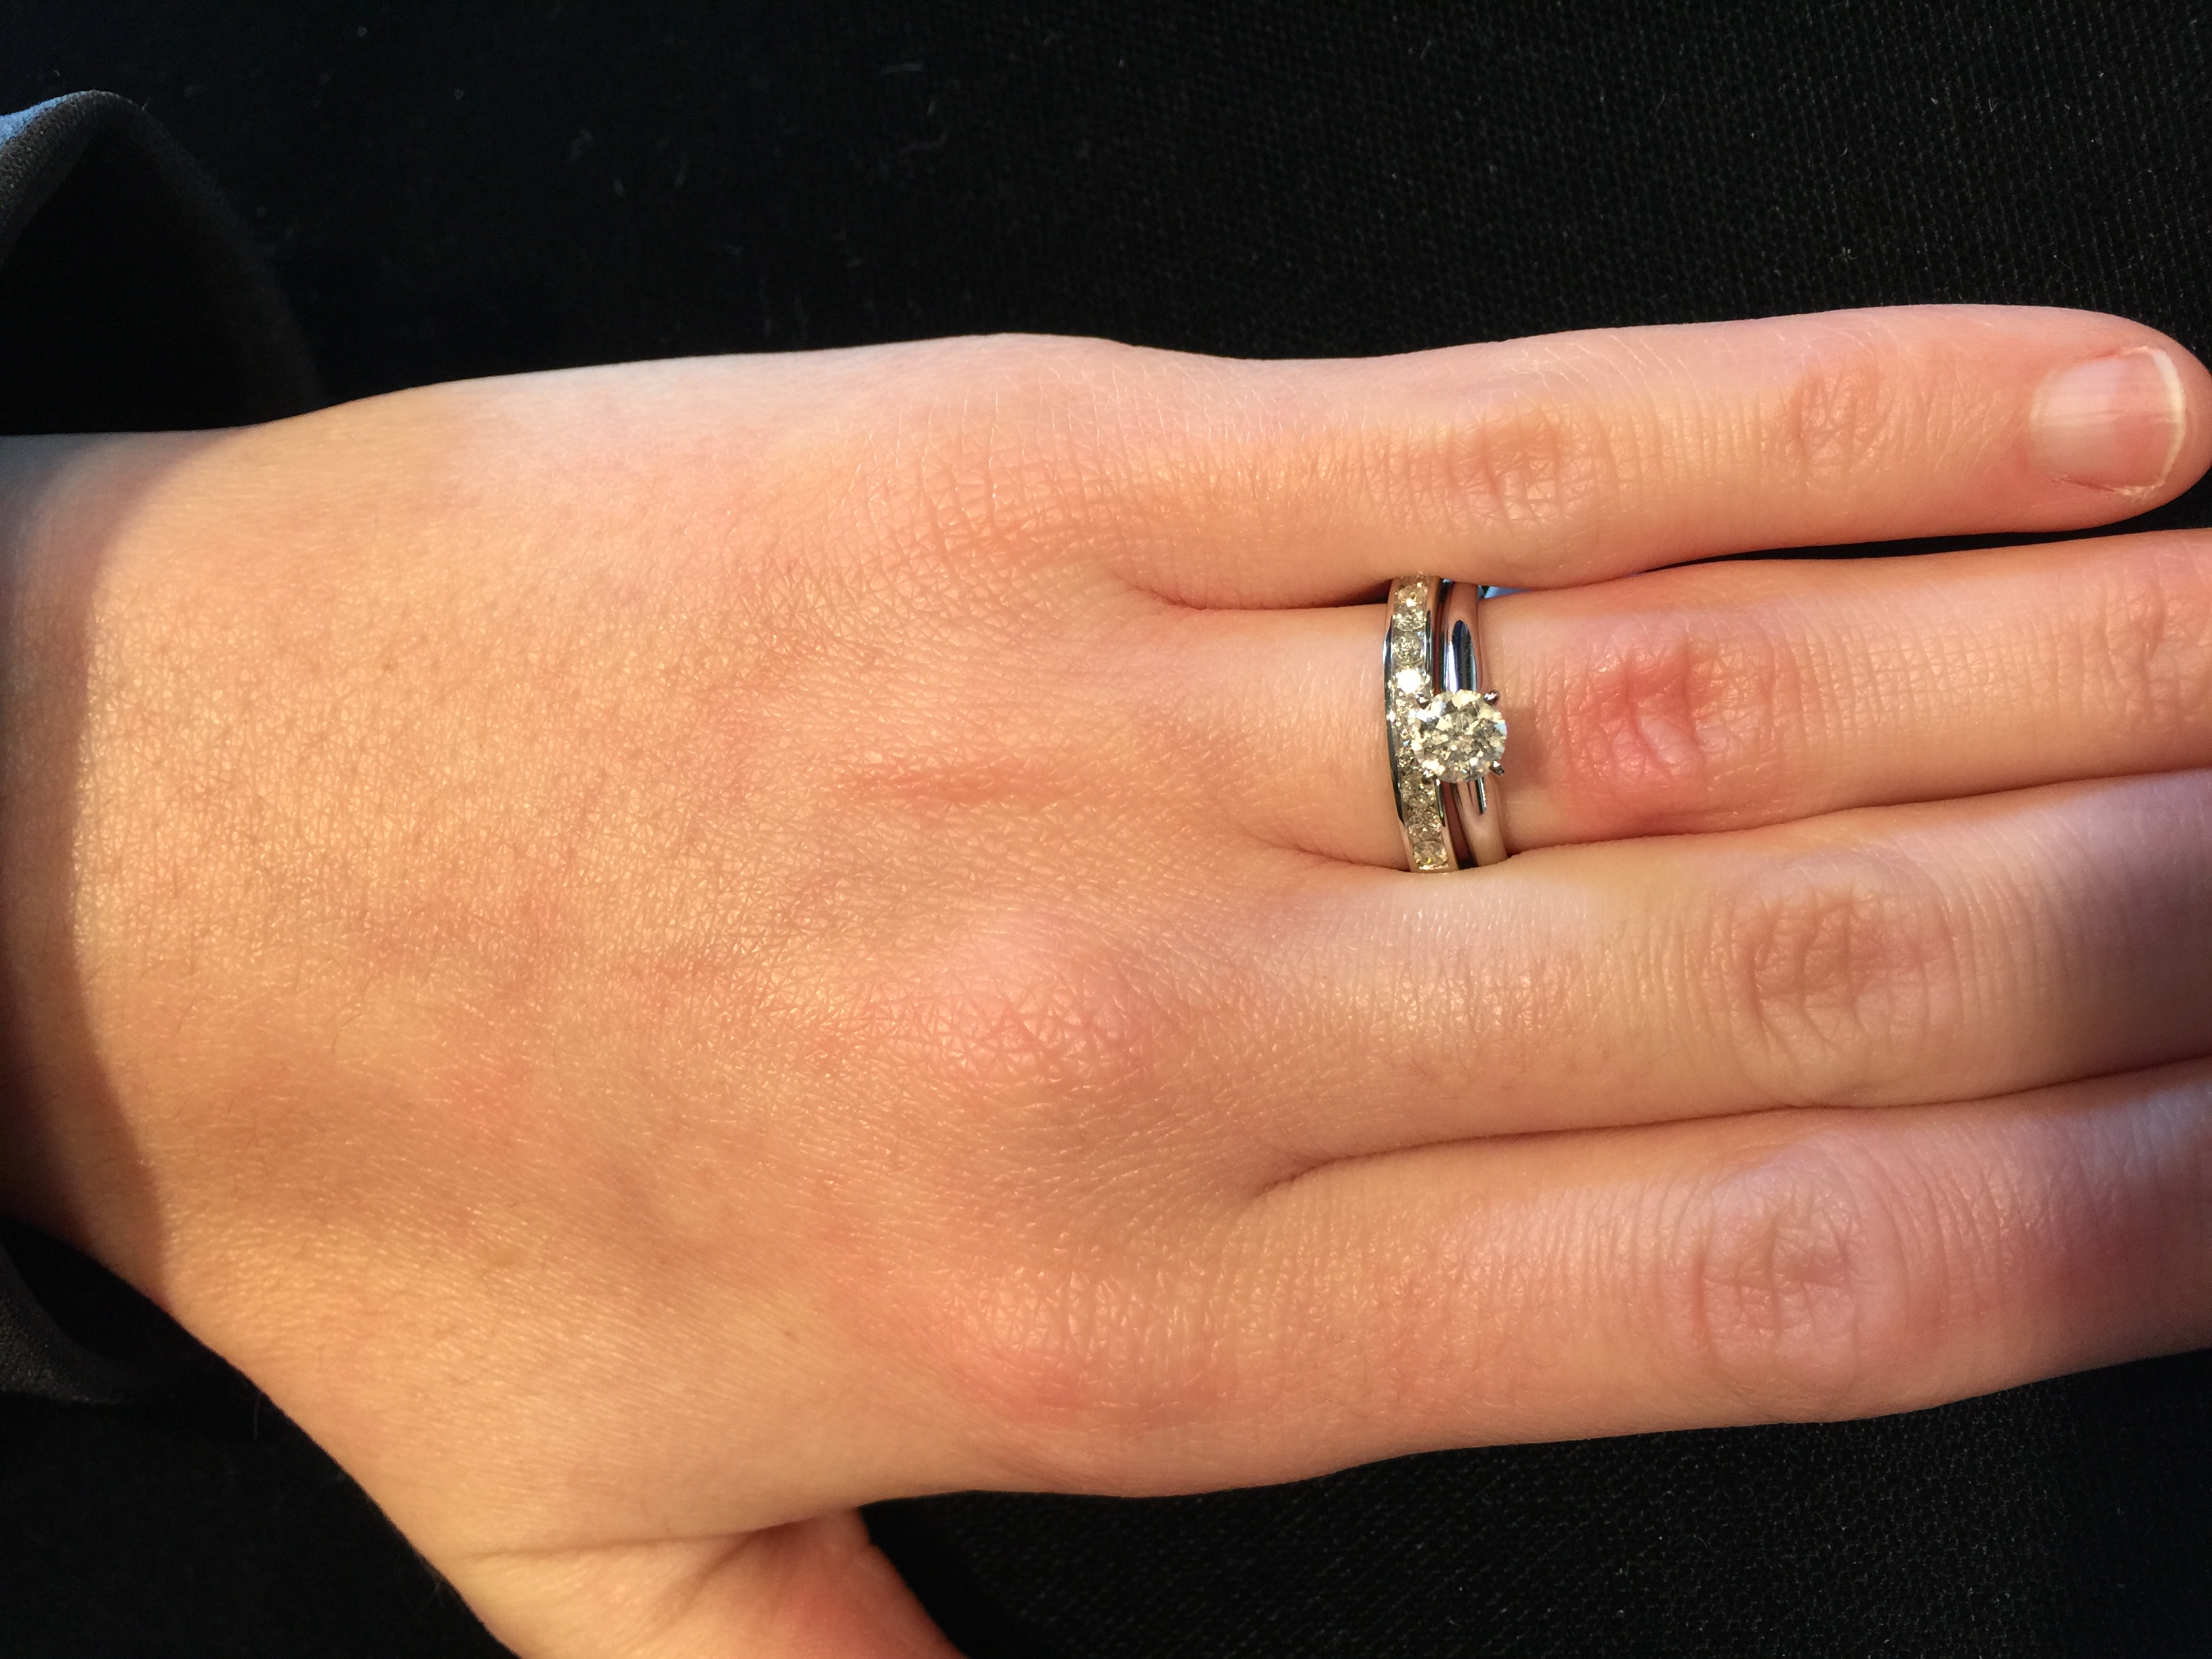 plain wedding band or diamonds 2 diamond wedding band The gold band would be white gold and the diamond band would be made thinner to match my e ring I m torn Thoughts Thank you